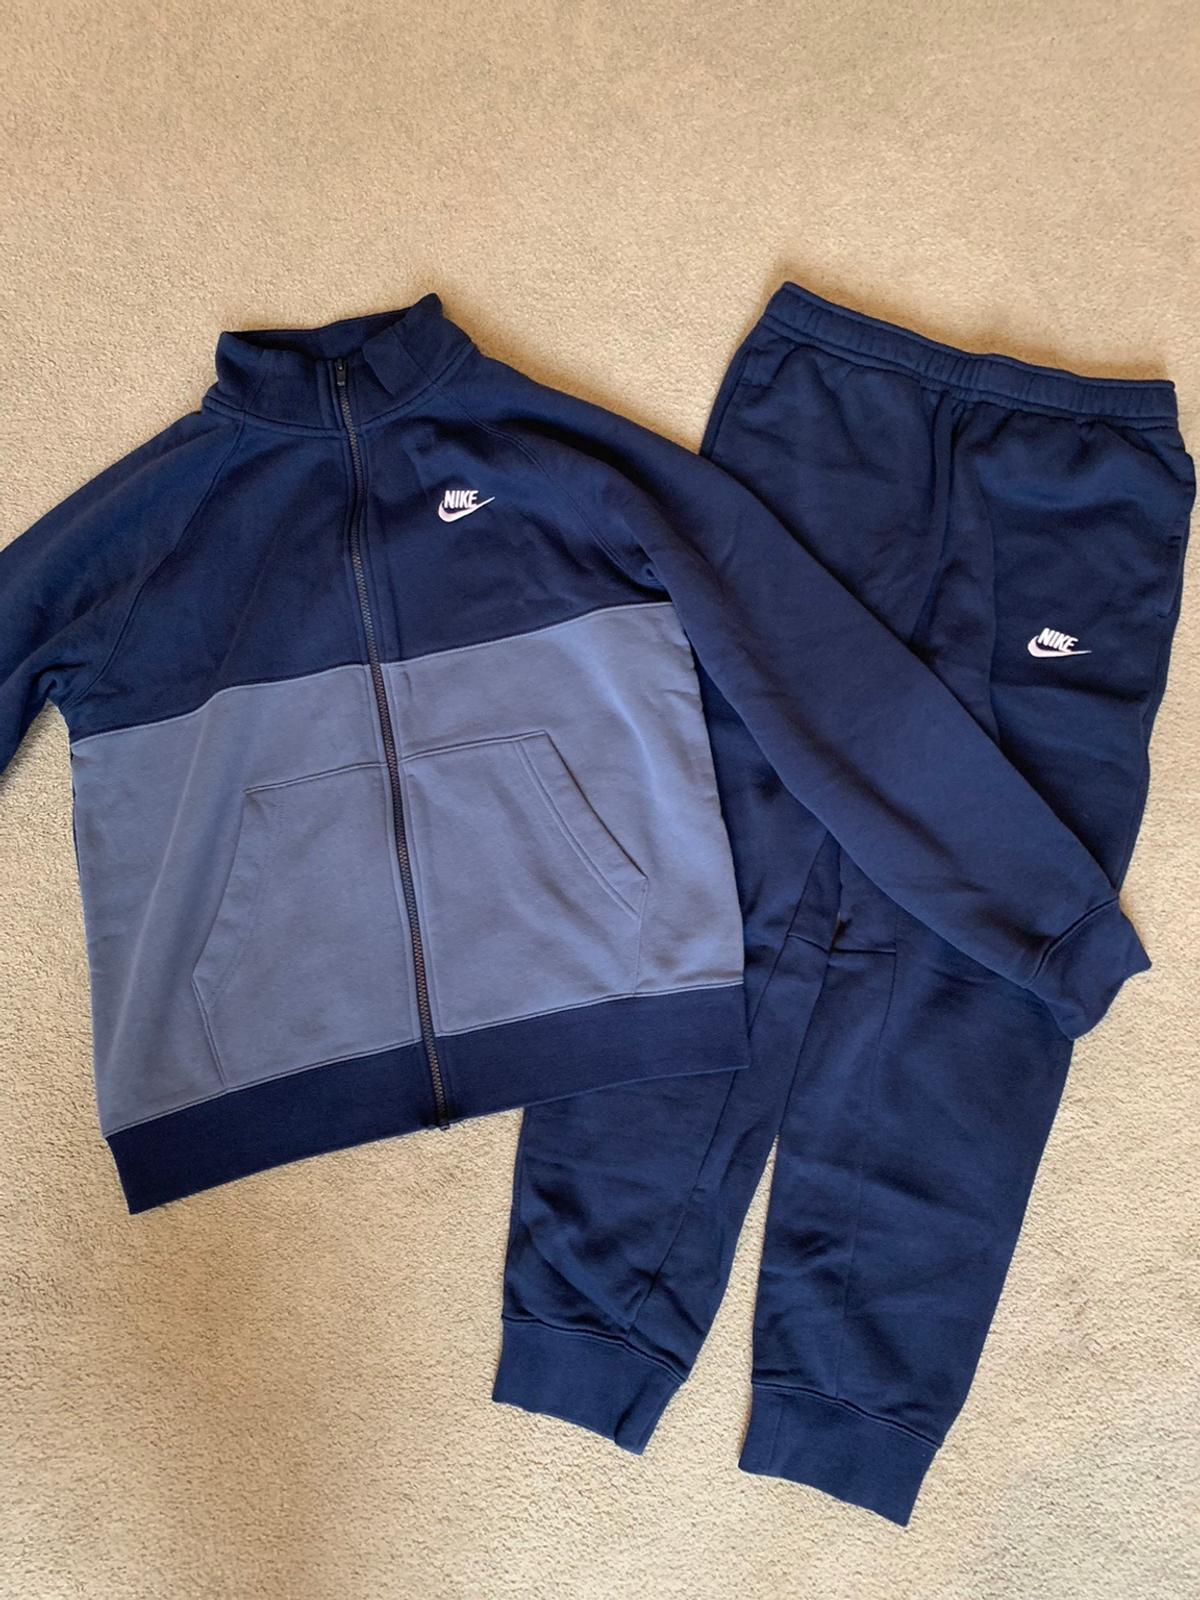 Mens Nike Chariot Tracksuit In Tandridge For 70 00 For Sale Shpock